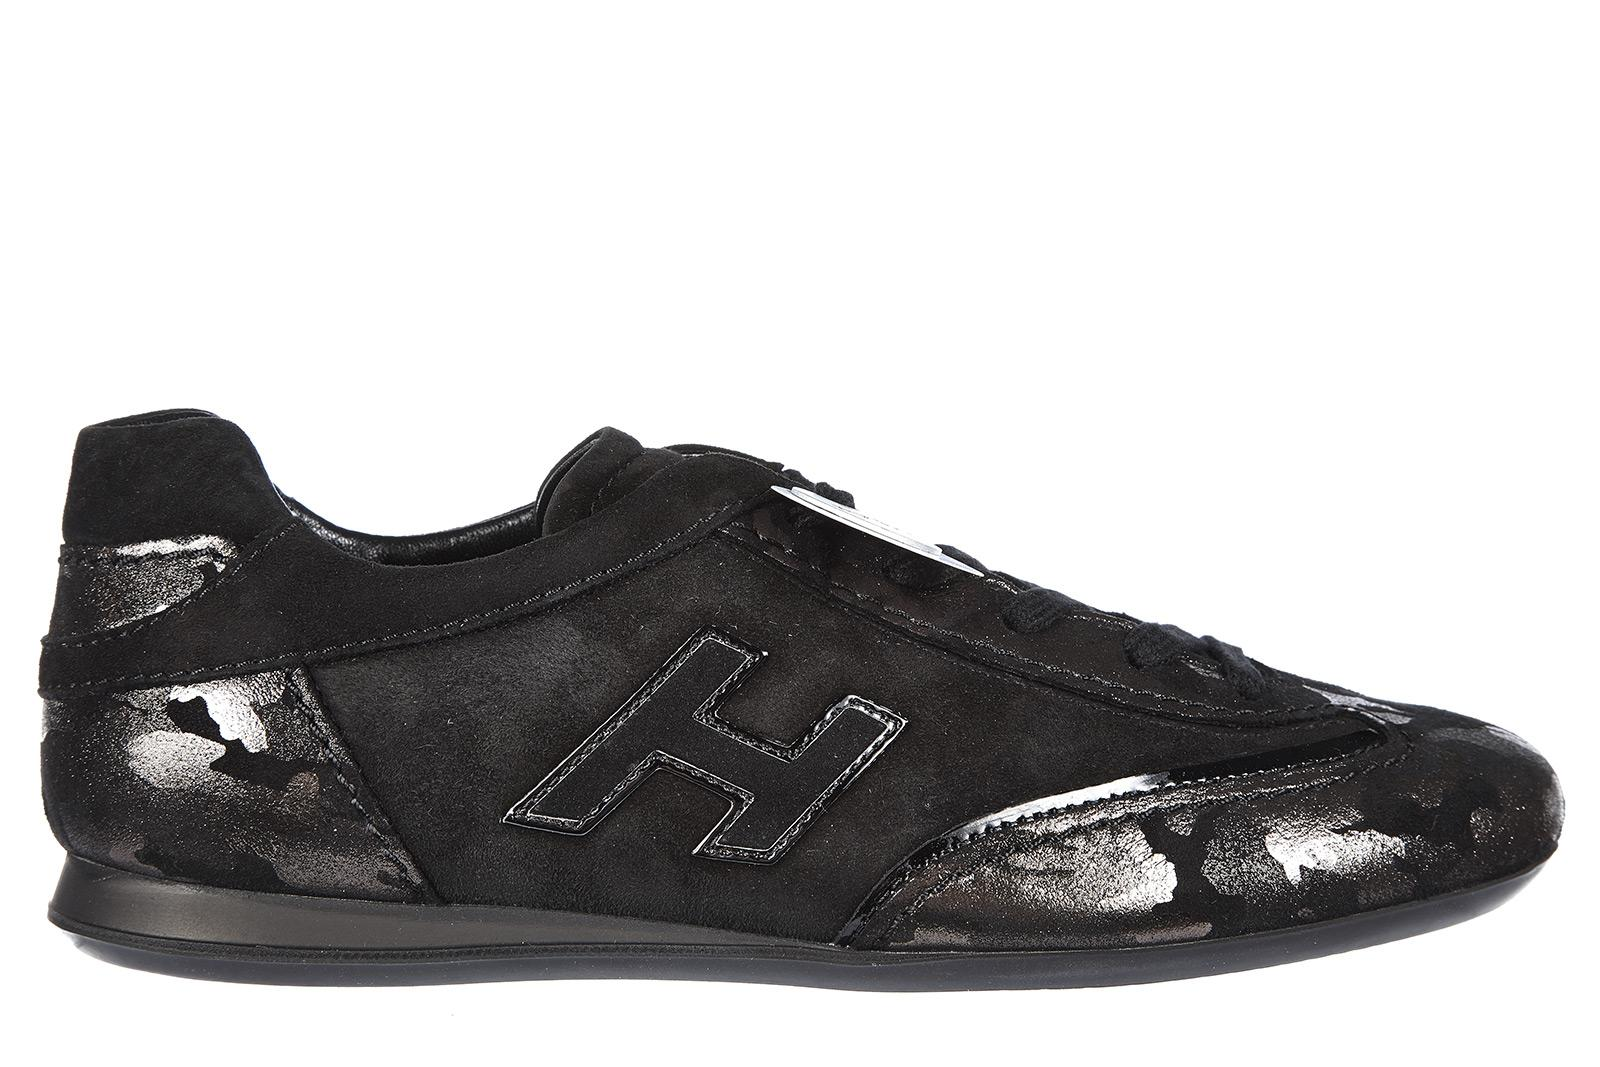 Hogan Women's Shoes Suede Trainers Sneakers Olympia H Flock In Black